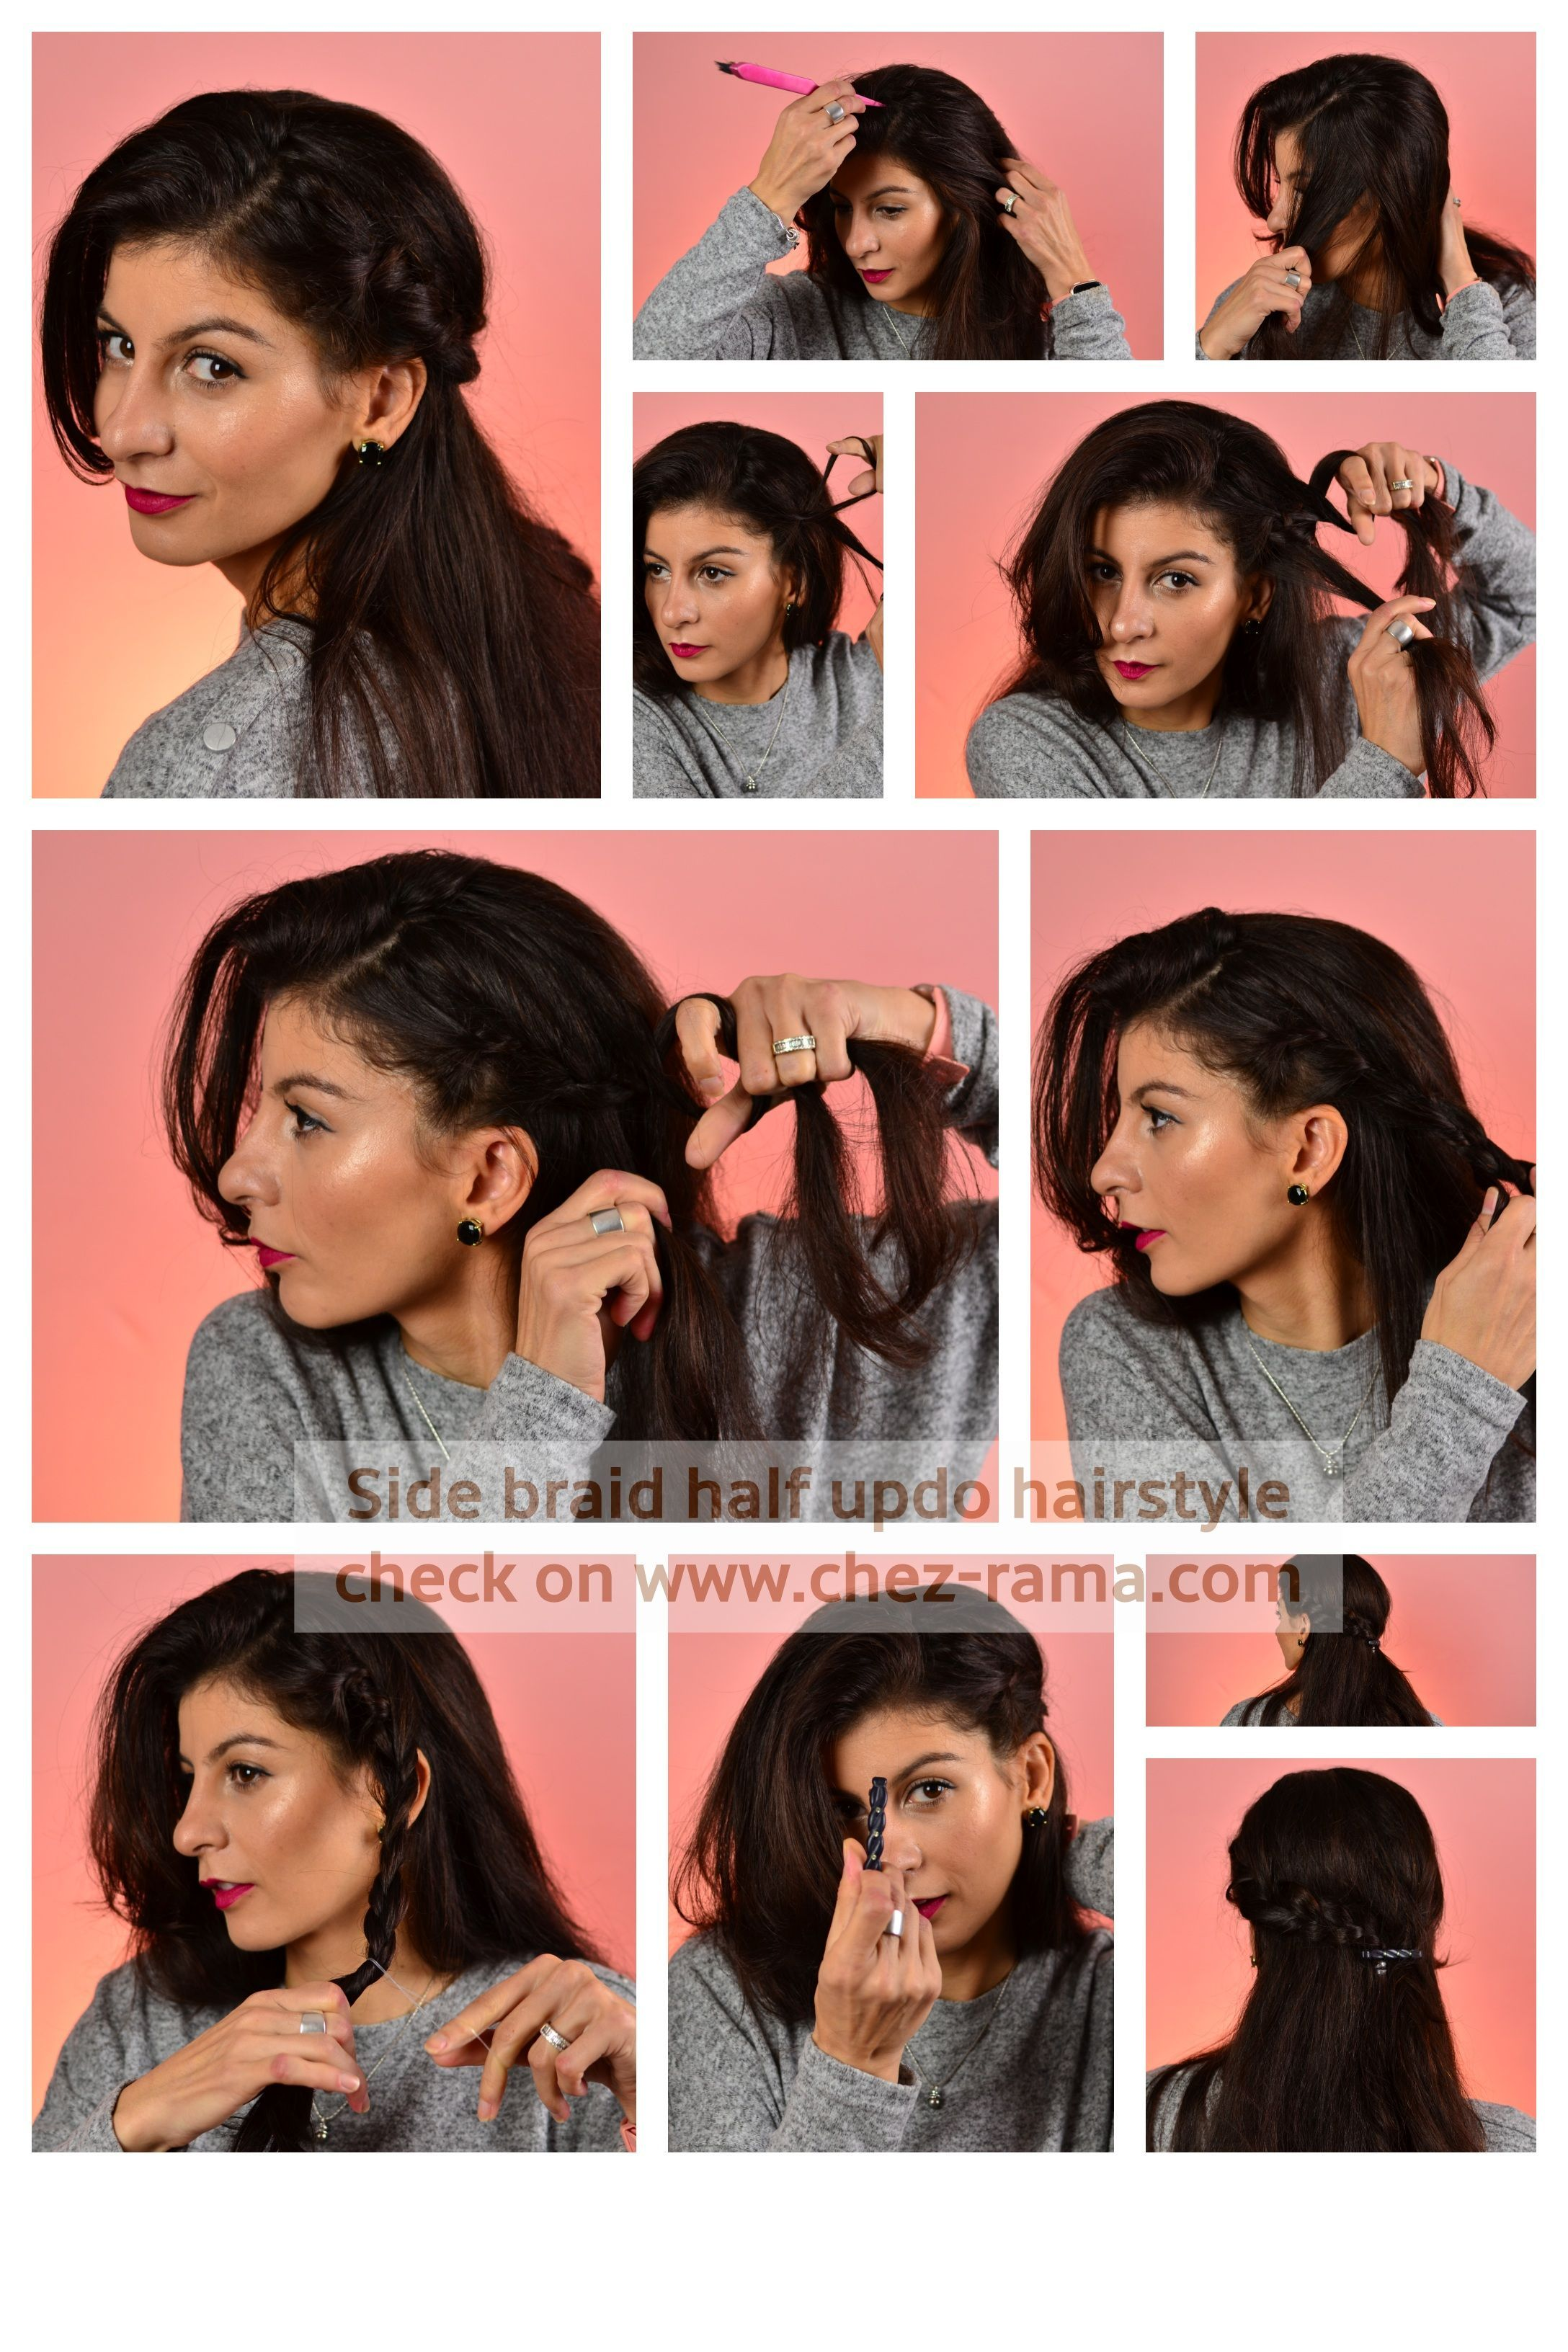 Lazy Hairstyle To Do At Home Braid Side Half Up Half Down Updo Easy Hairtutrial Quick Hairstyle Thanksgivin Lazy Hairstyles Half Up Hair Night Out Hairstyles